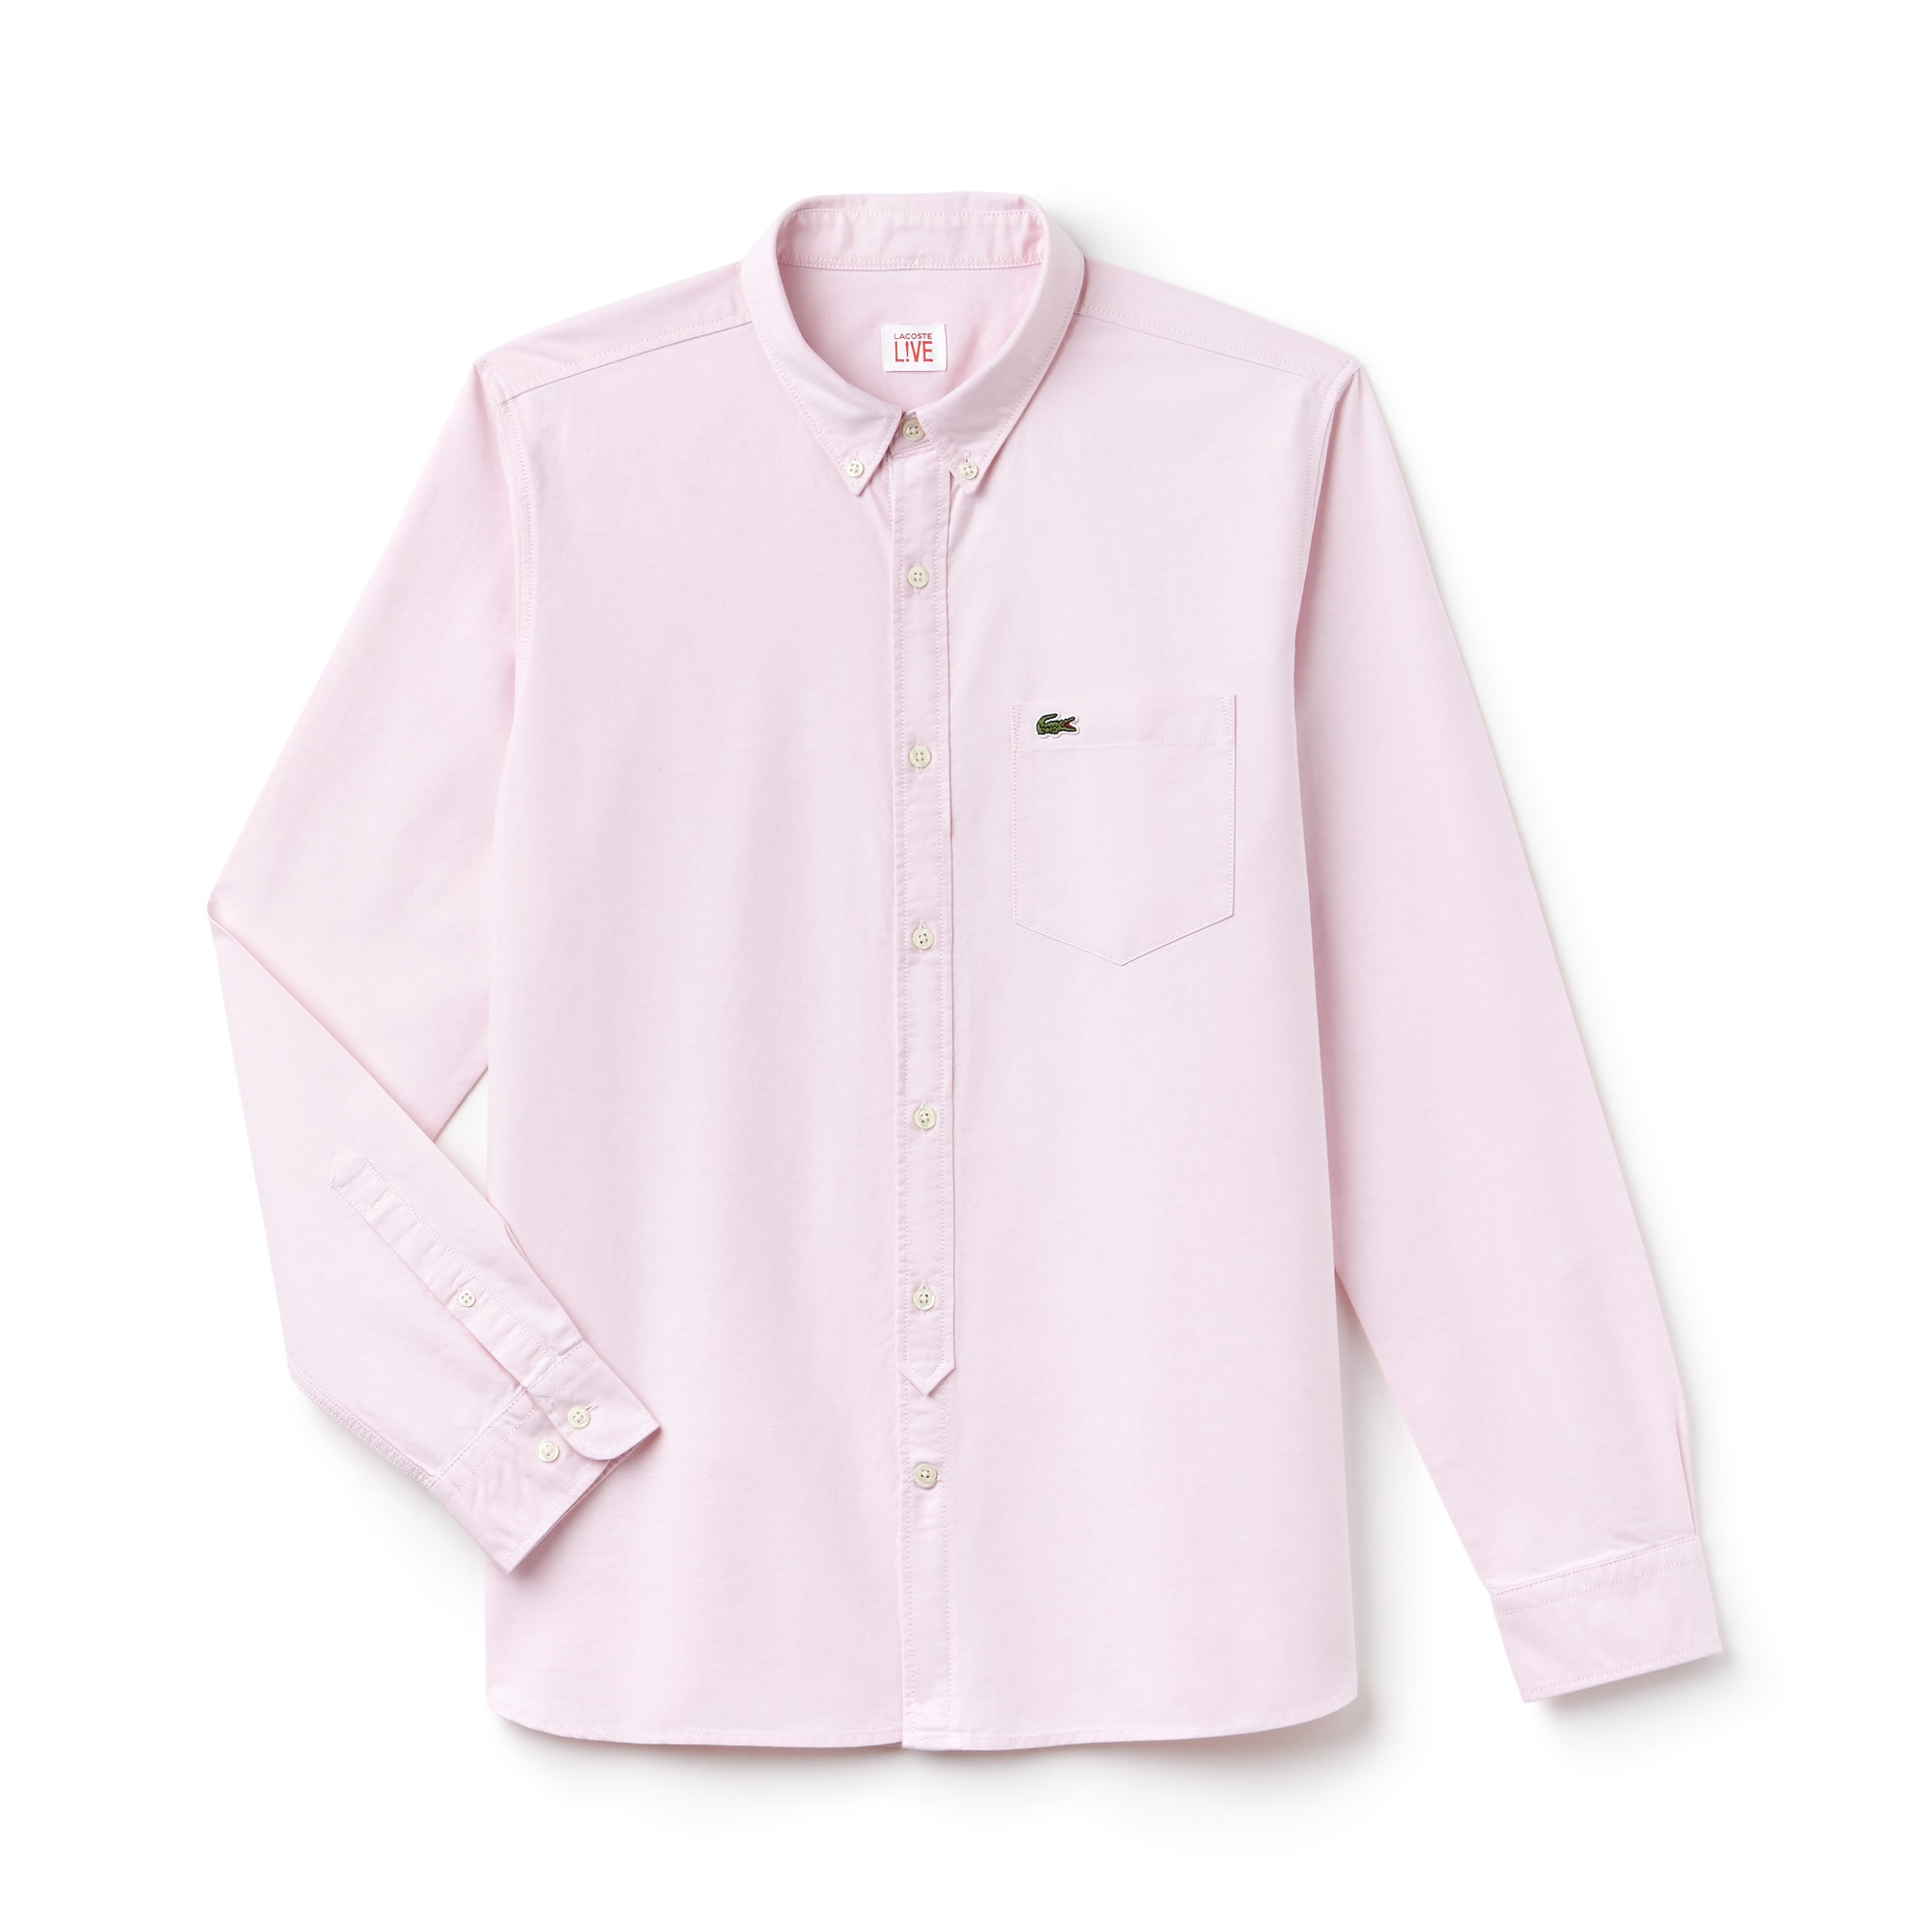 Camicia slim fit Lacoste LIVE in cotone Oxford tinta unita